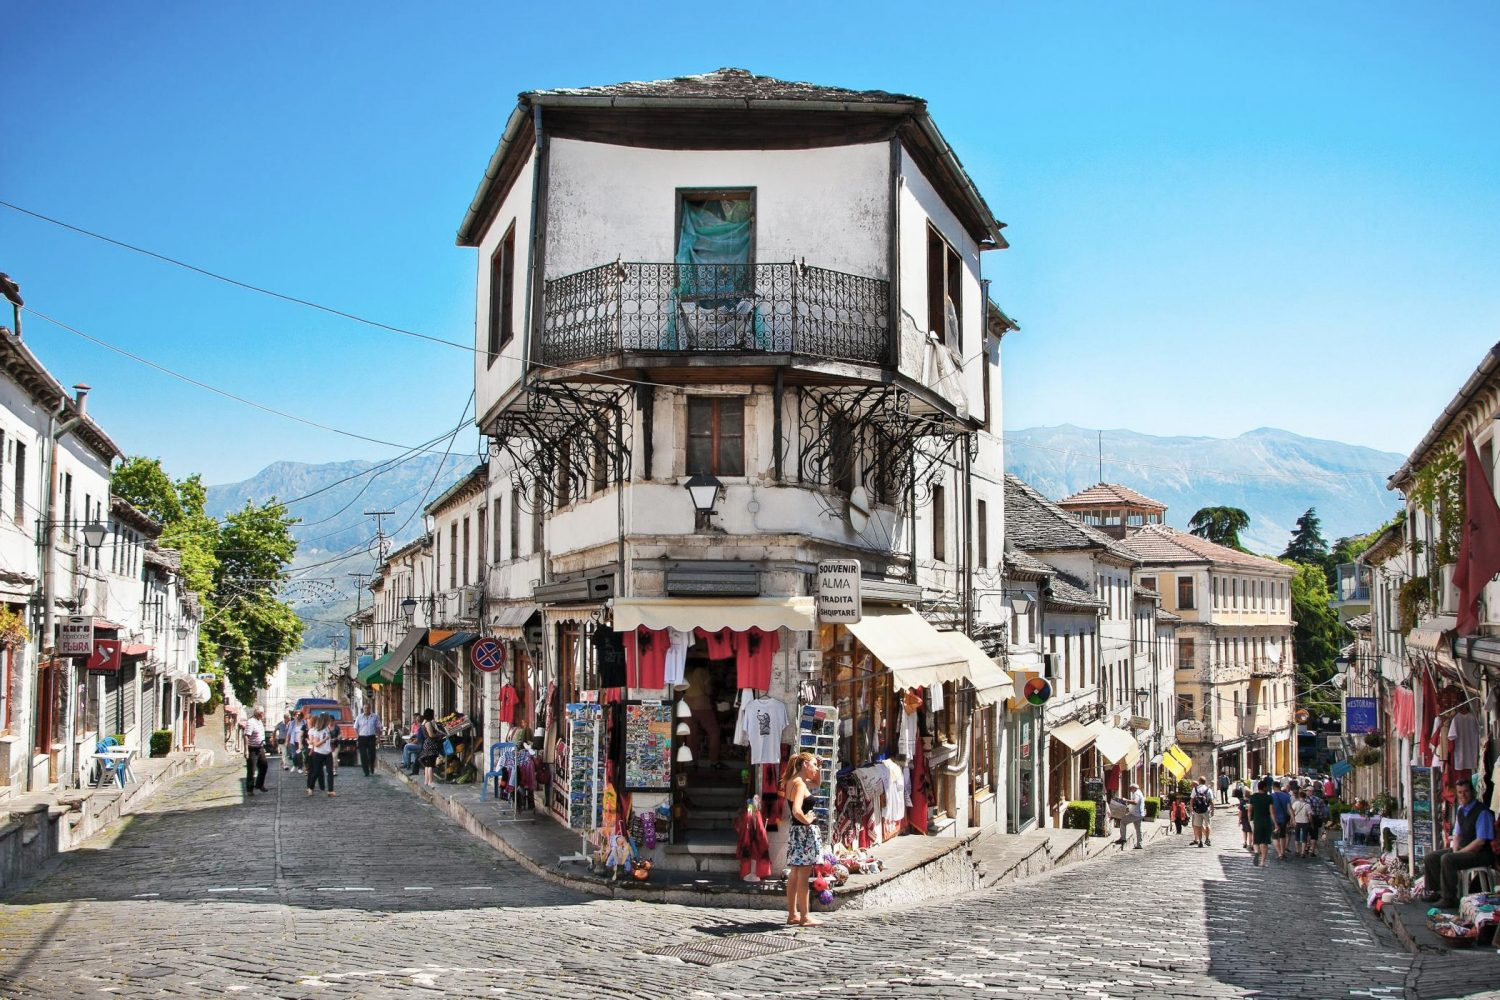 The Old Bazaar of Gjirokaster